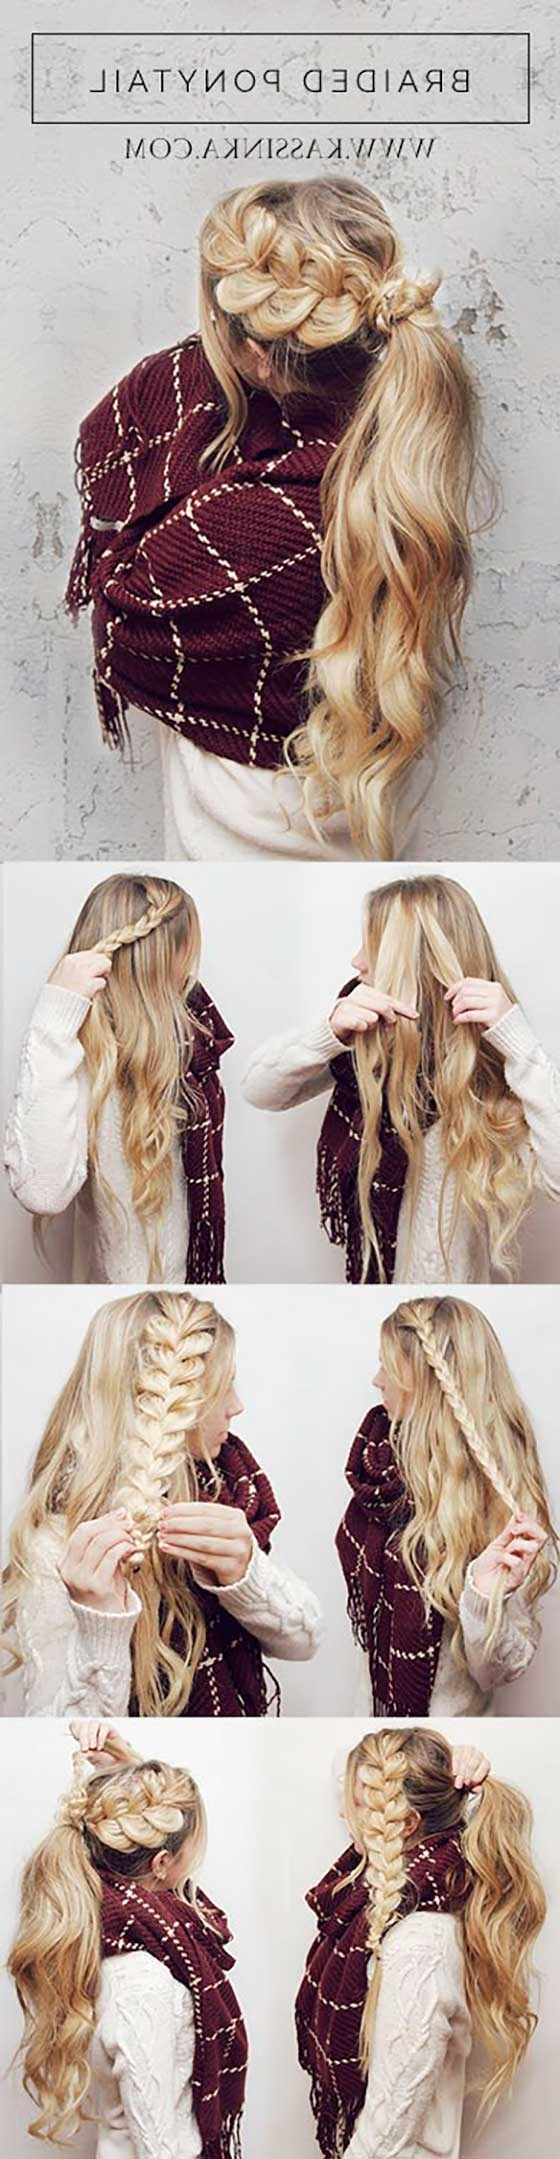 40 Braided Hairstyles For Long Hair Pertaining To Widely Used Bow Braid Ponytail Hairstyles (View 3 of 20)